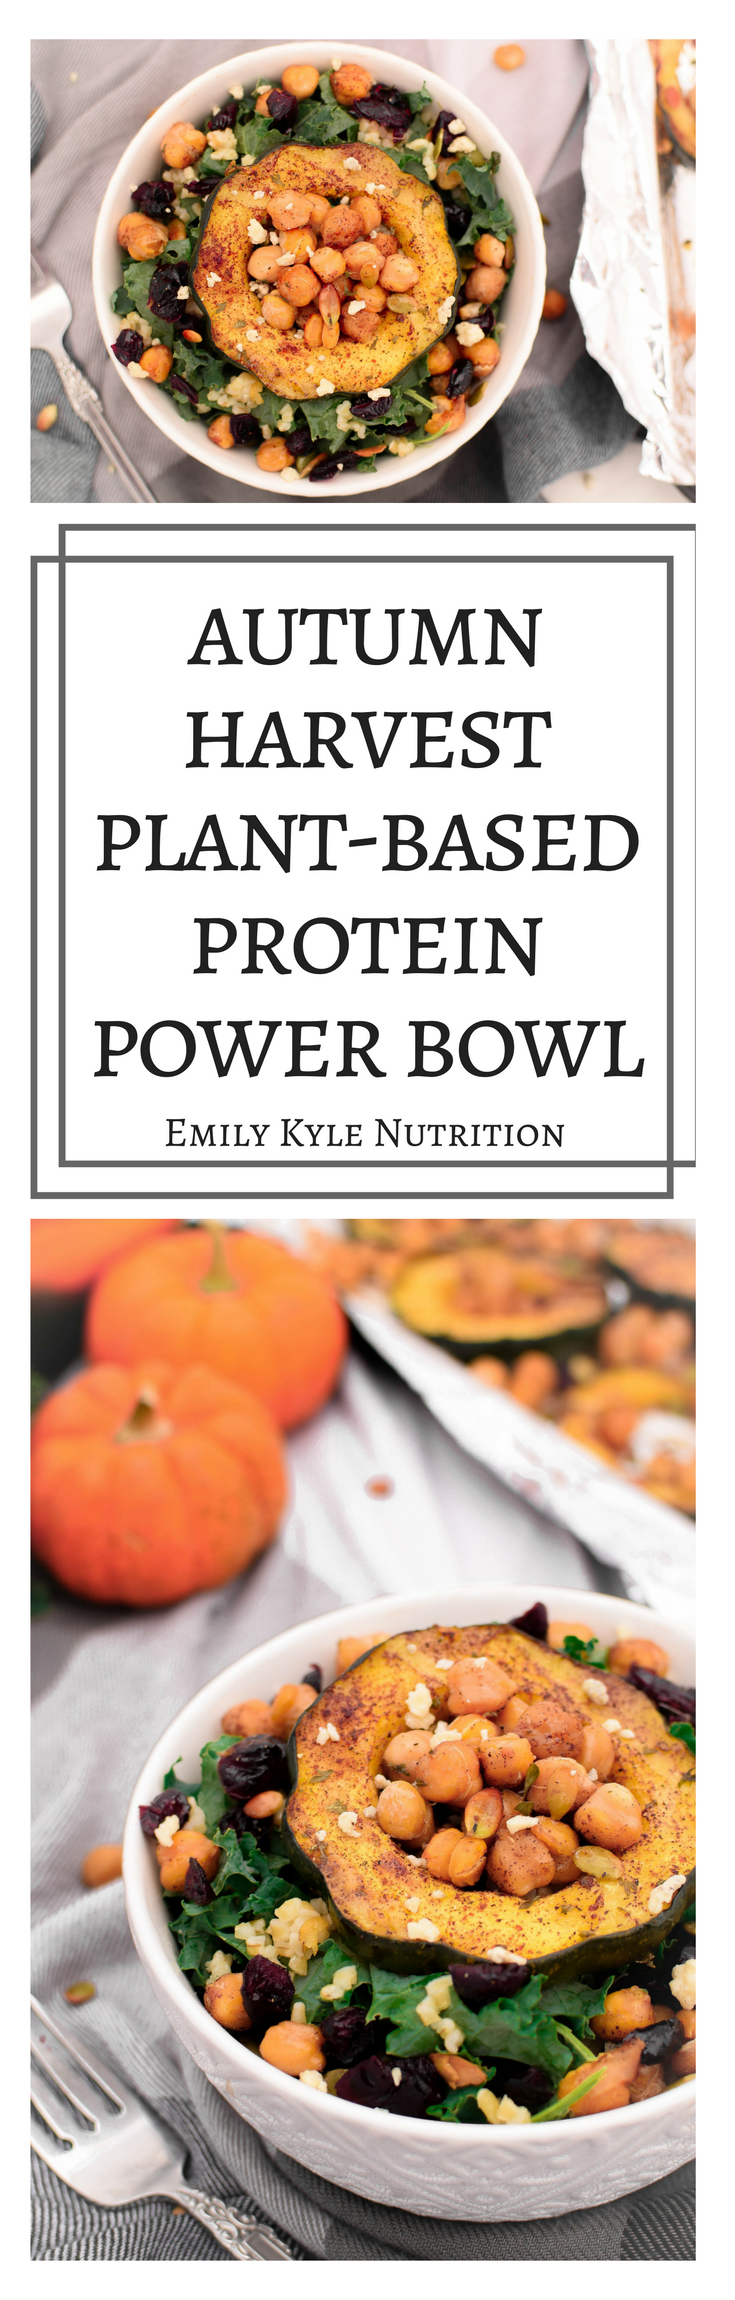 Savor all of your favorite fall flavors with this nutrient dense Autumn Harvest Plant-Based Protein Power Bowl by Emily Kyle Nutrition